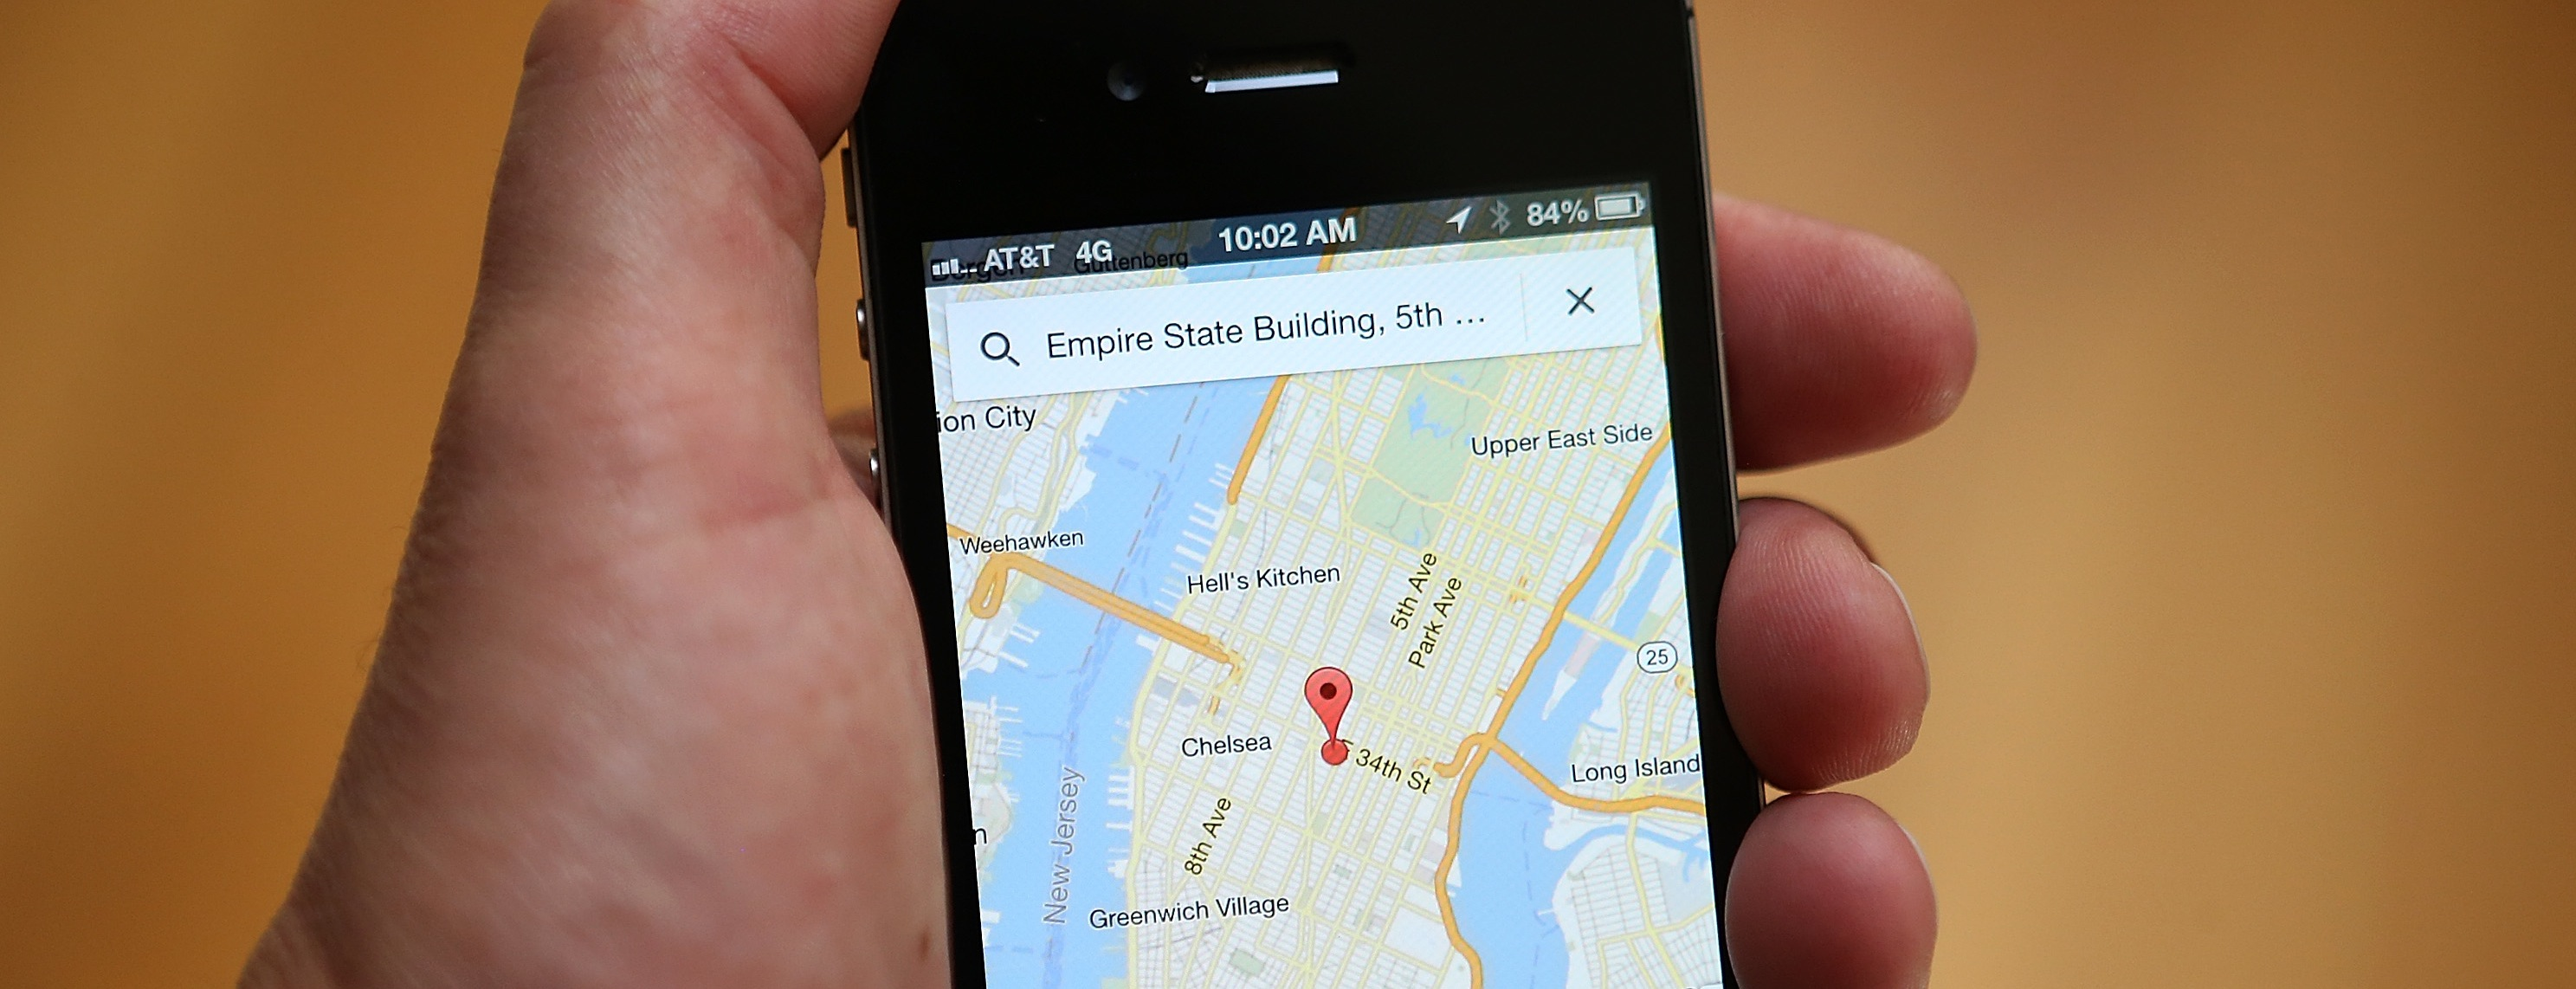 Google Maps for iOS Gets Faster Navigation, Route and Traffic Overview